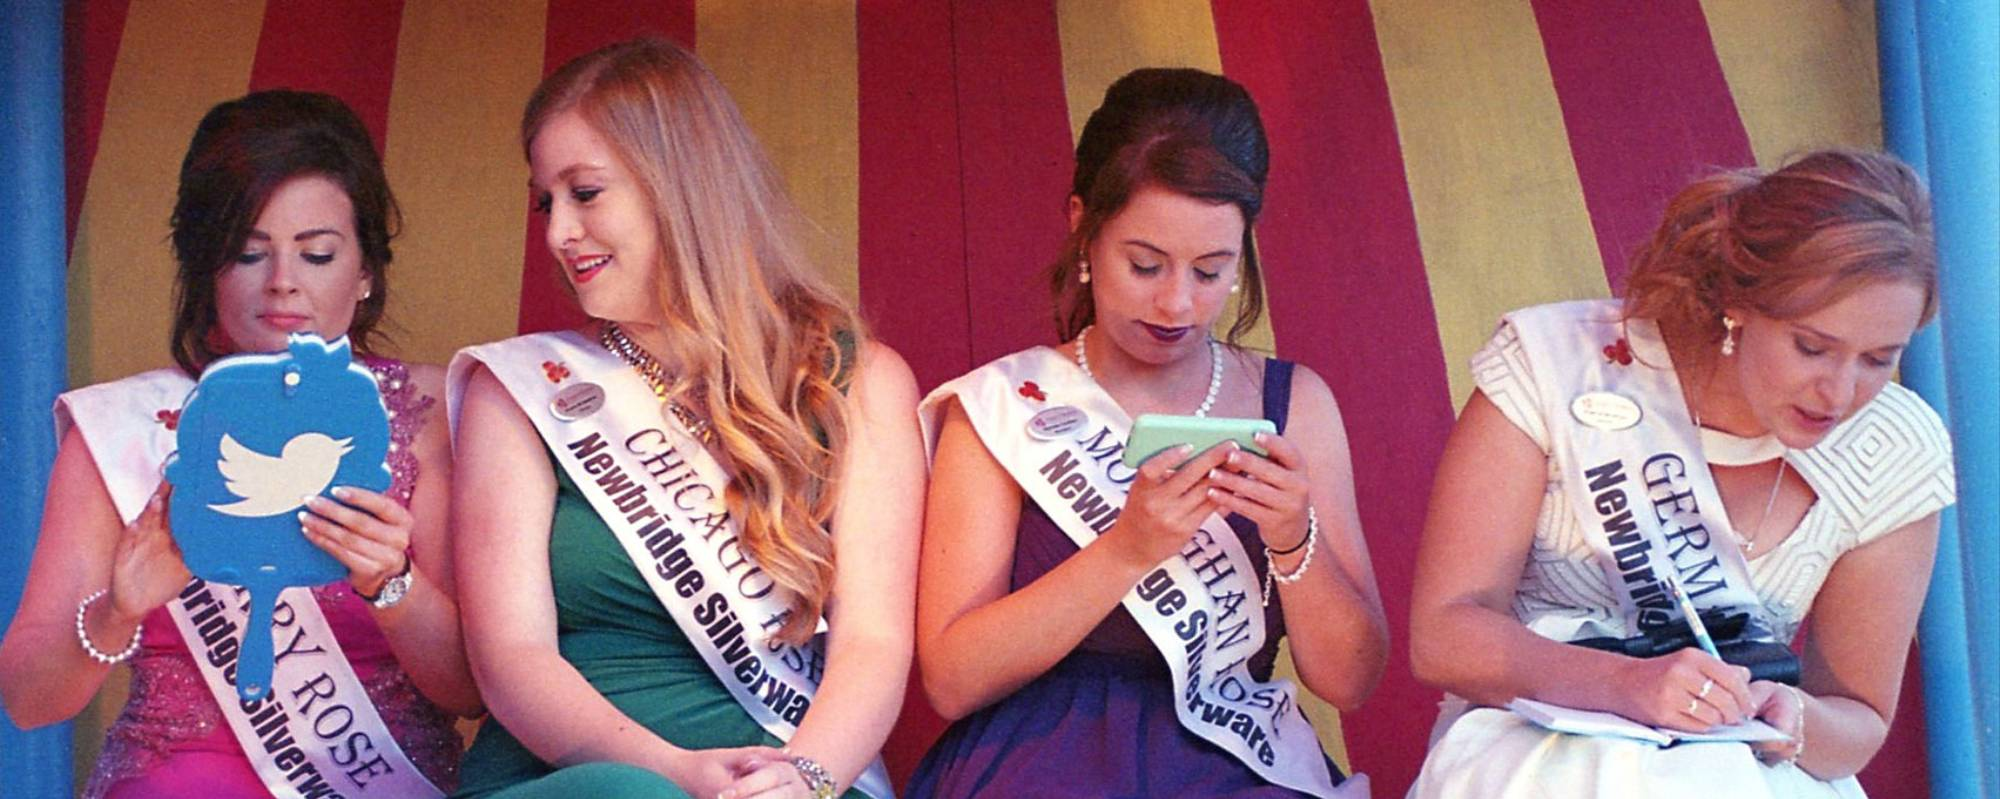 how s inner beauty pageant is getting a makeover broadly how s inner beauty pageant is getting a makeover